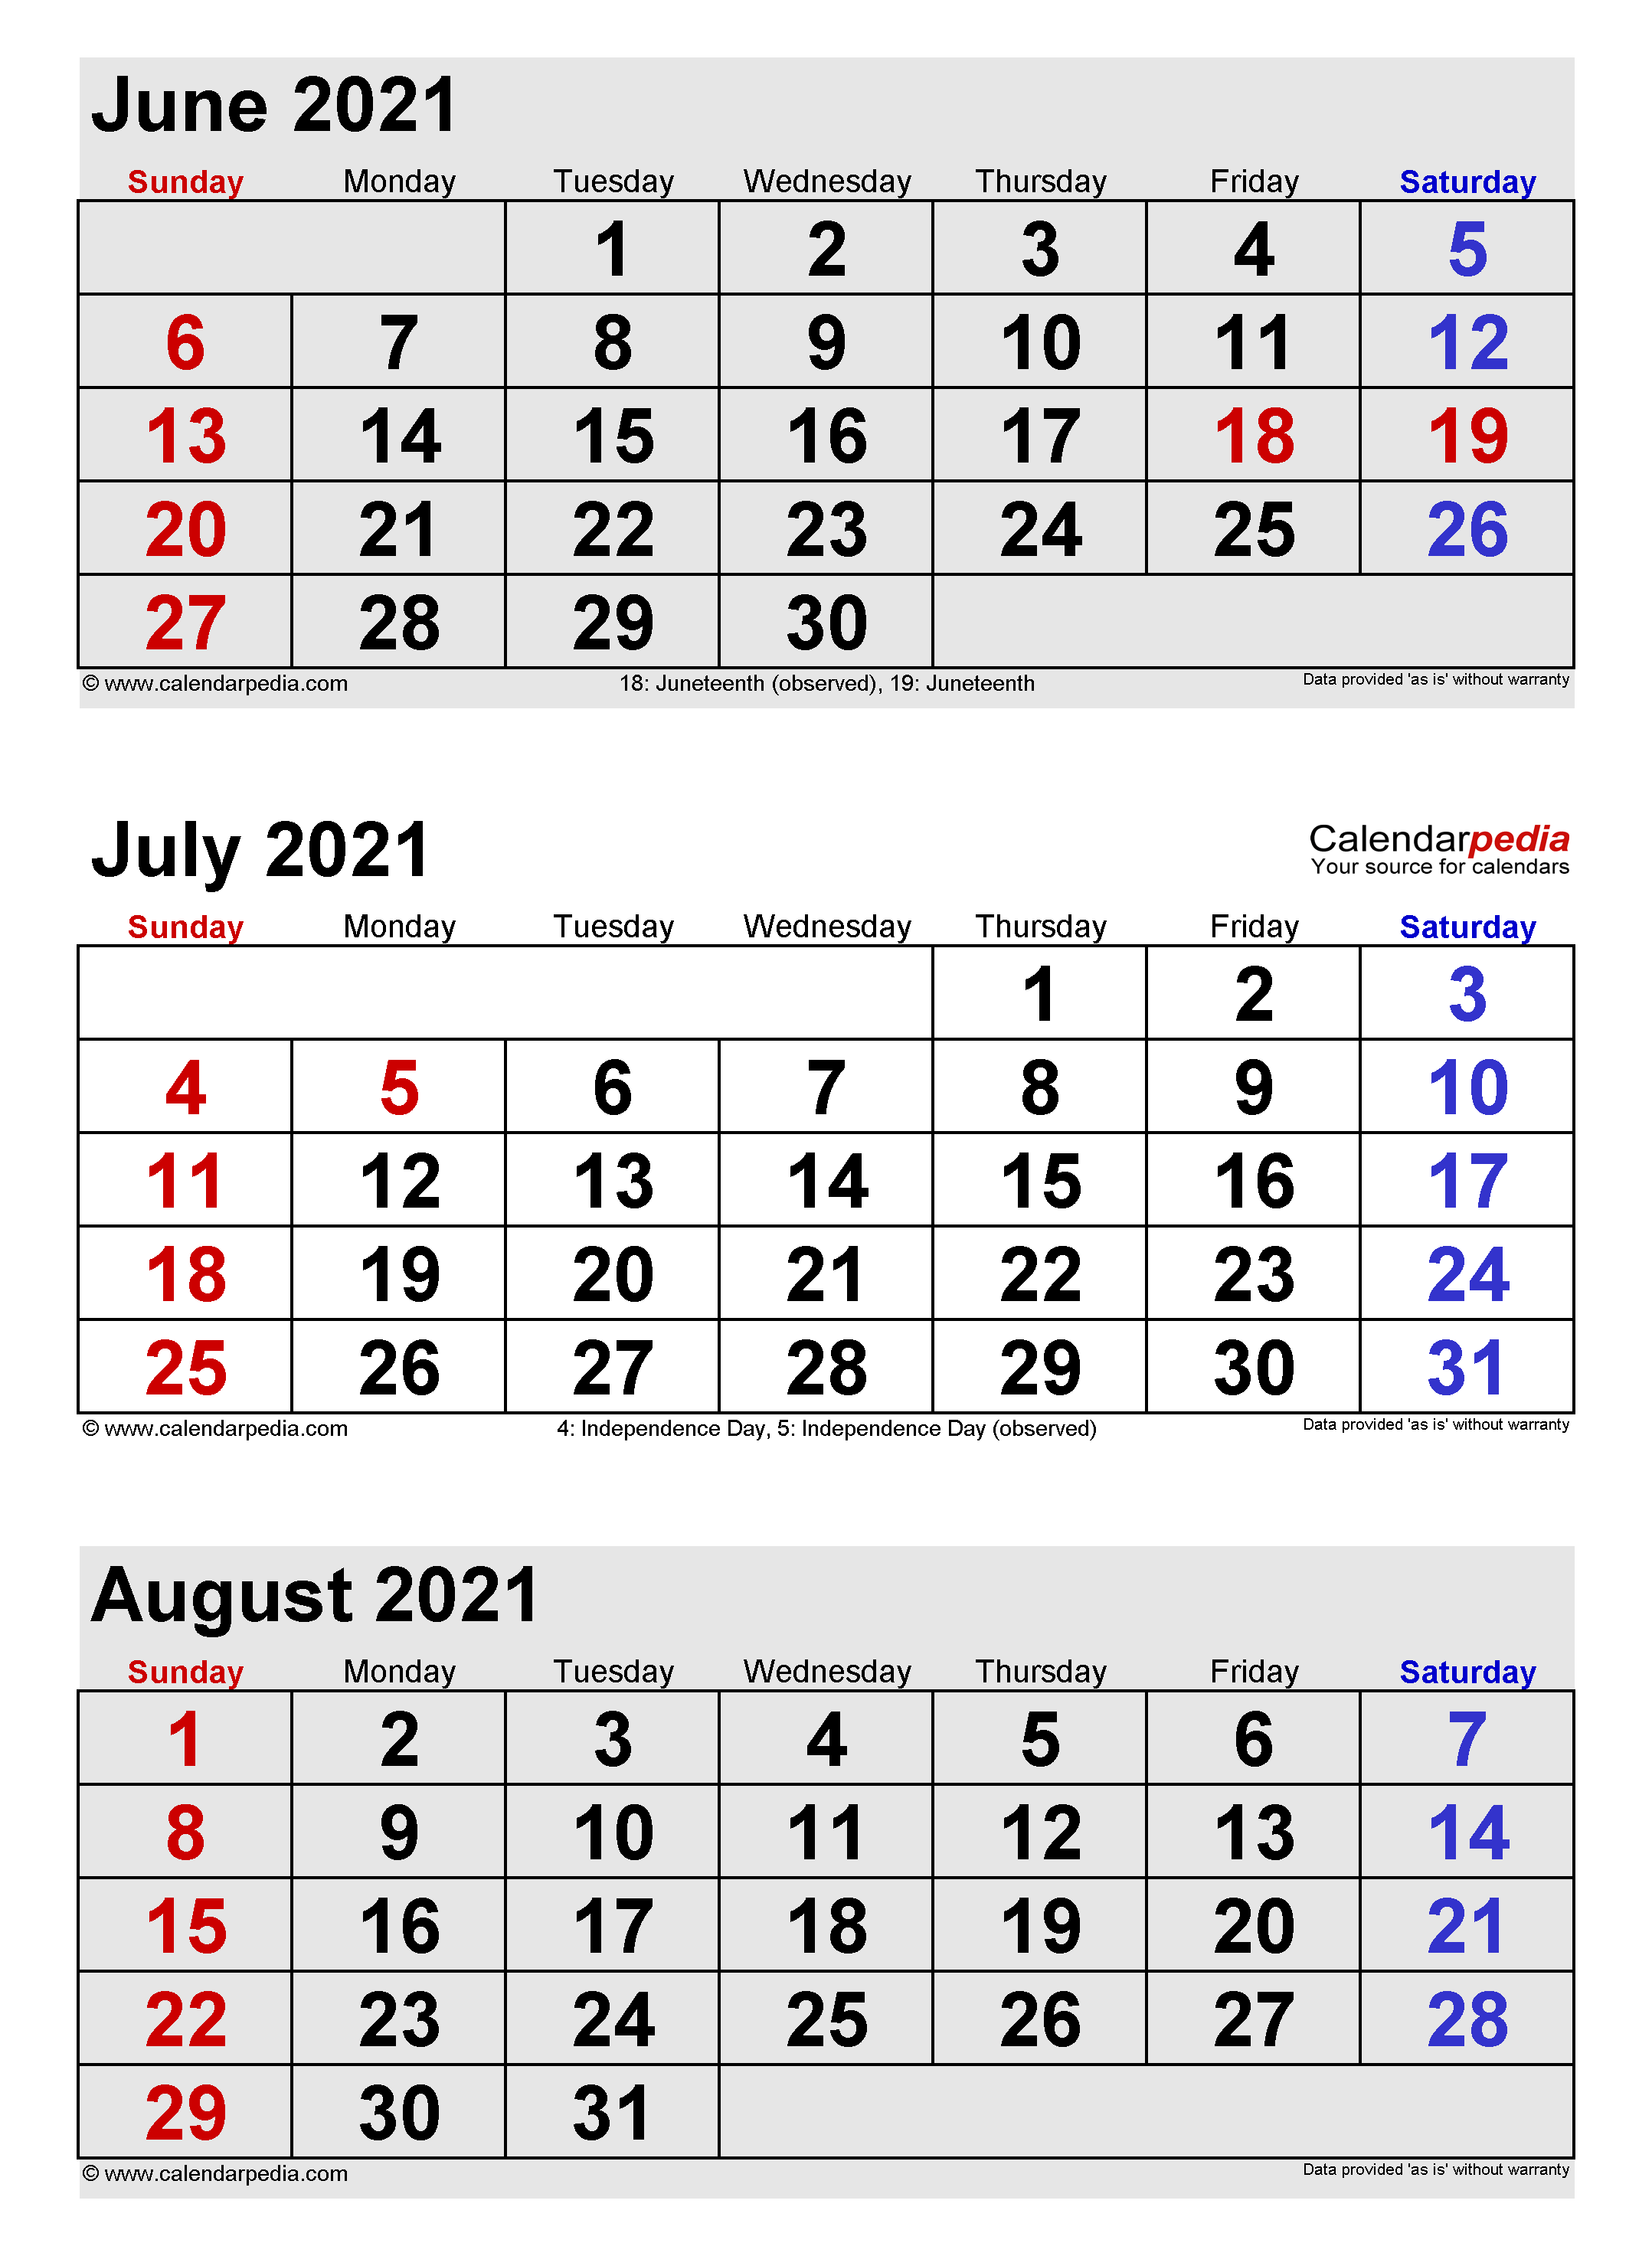 Calendar May June July August 2021 July 2021 Calendar | Templates for Word, Excel and PDF